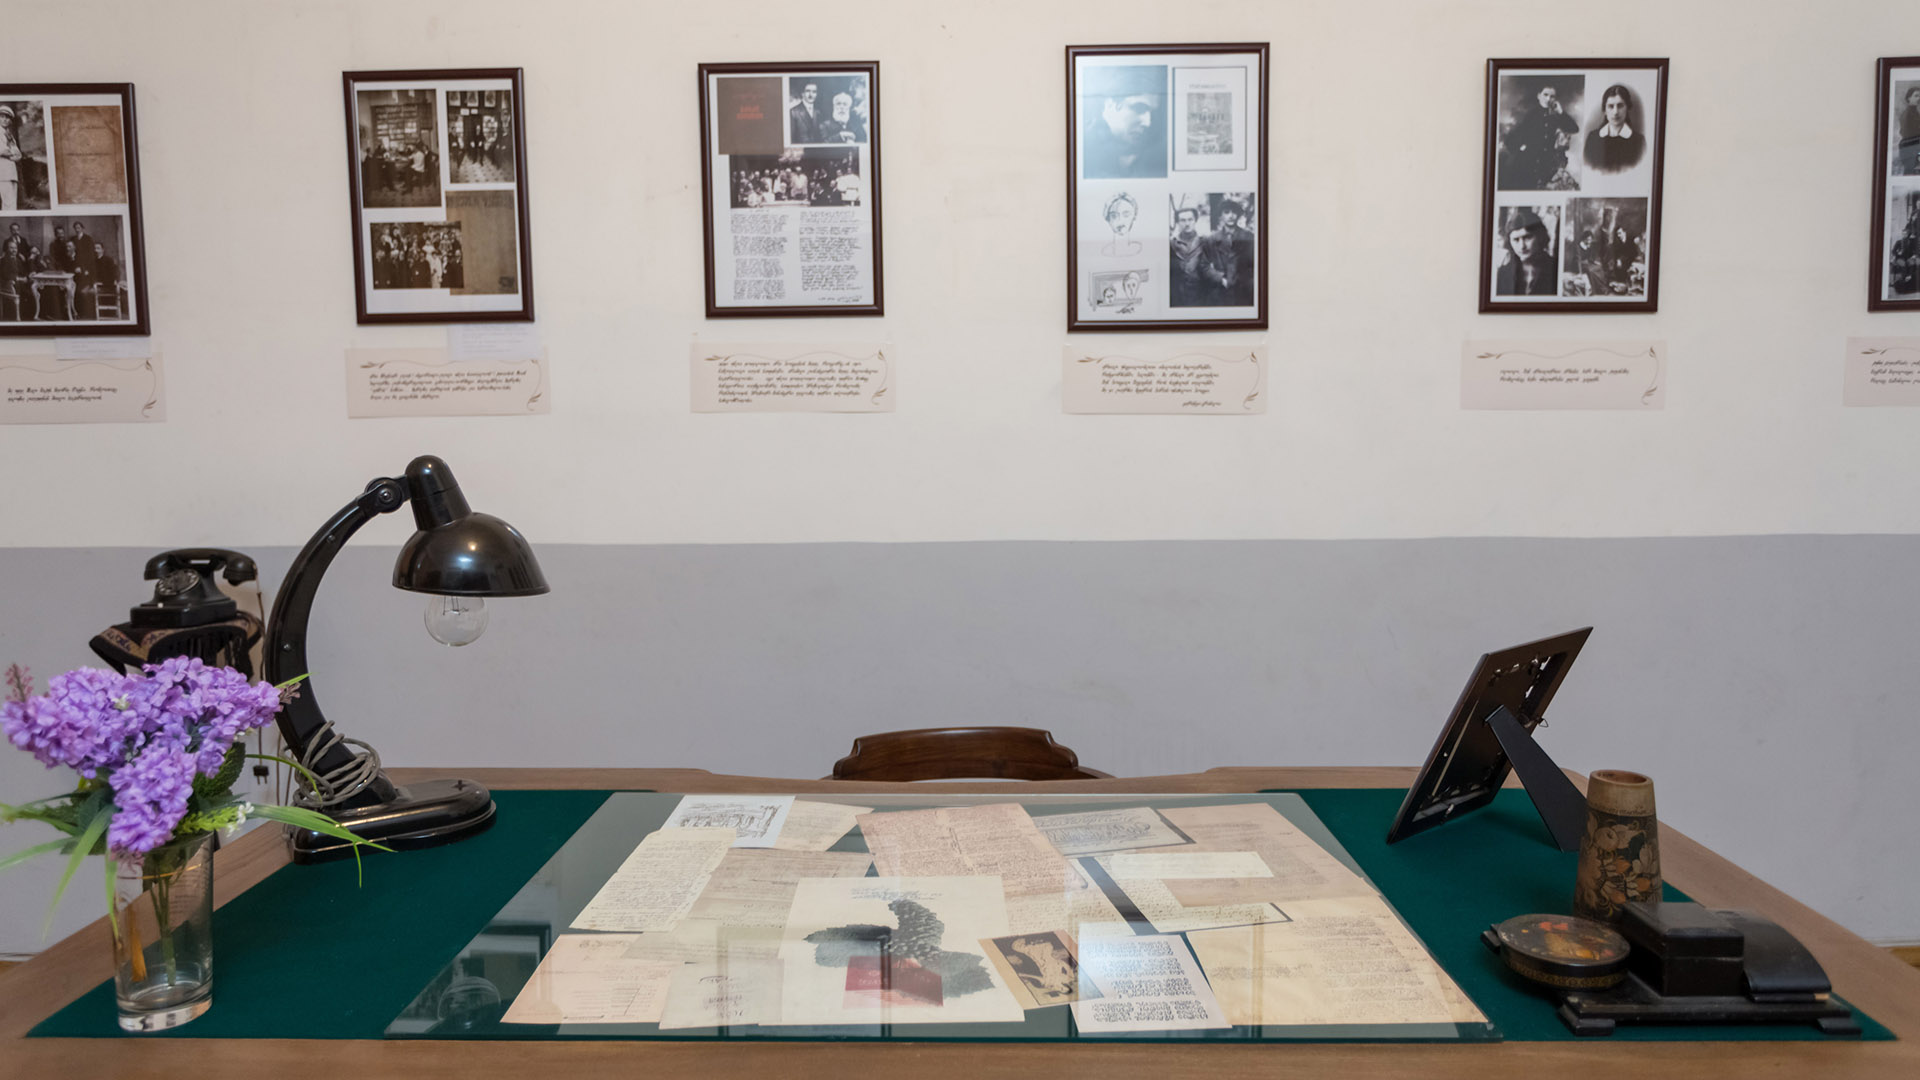 10b - Galaktion Tabidze Memorial House-Museum: Before/After